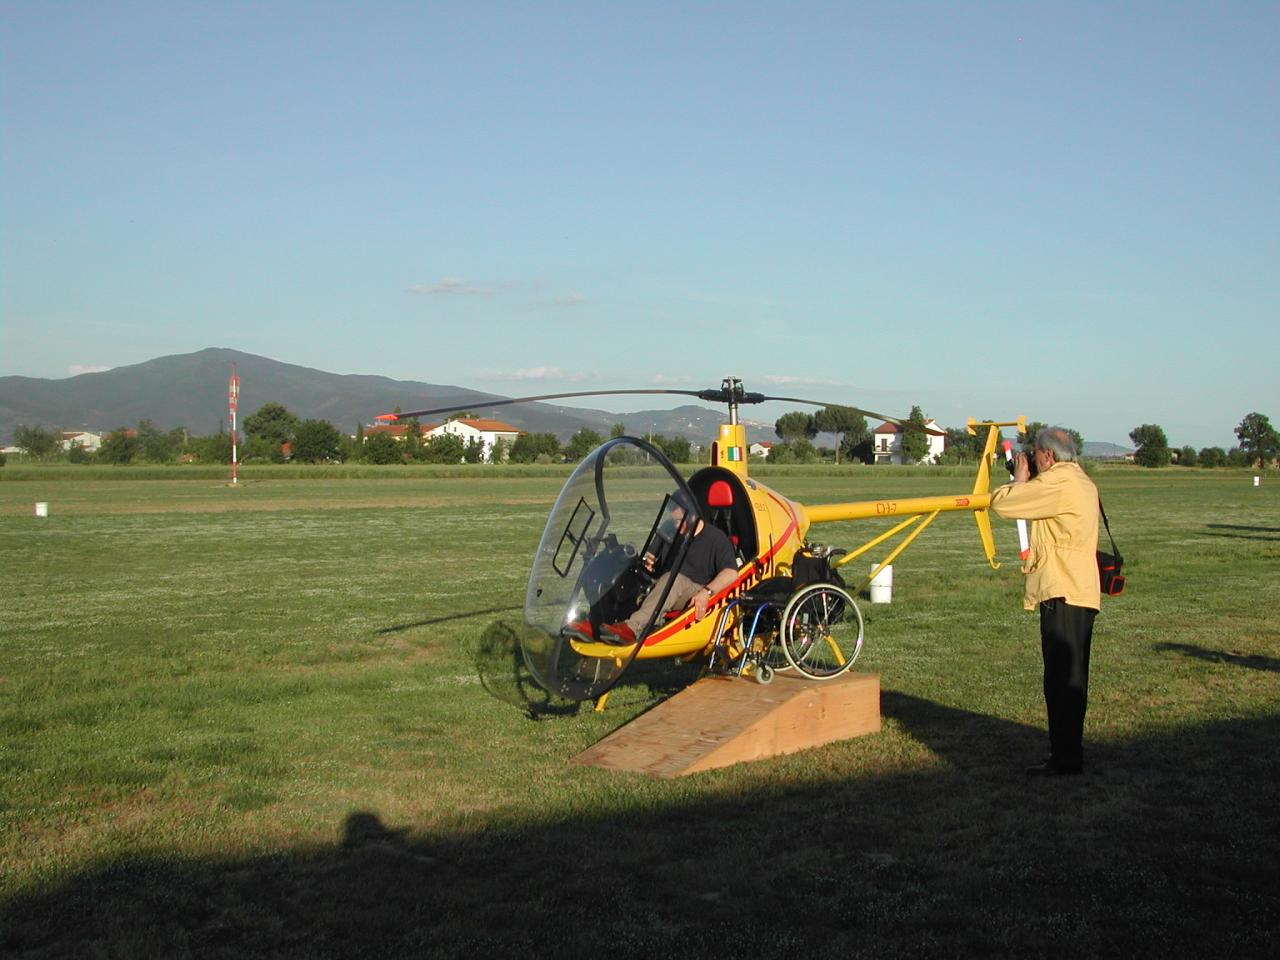 Ch 7 Elicottero : Ch helicopters helisport kompress